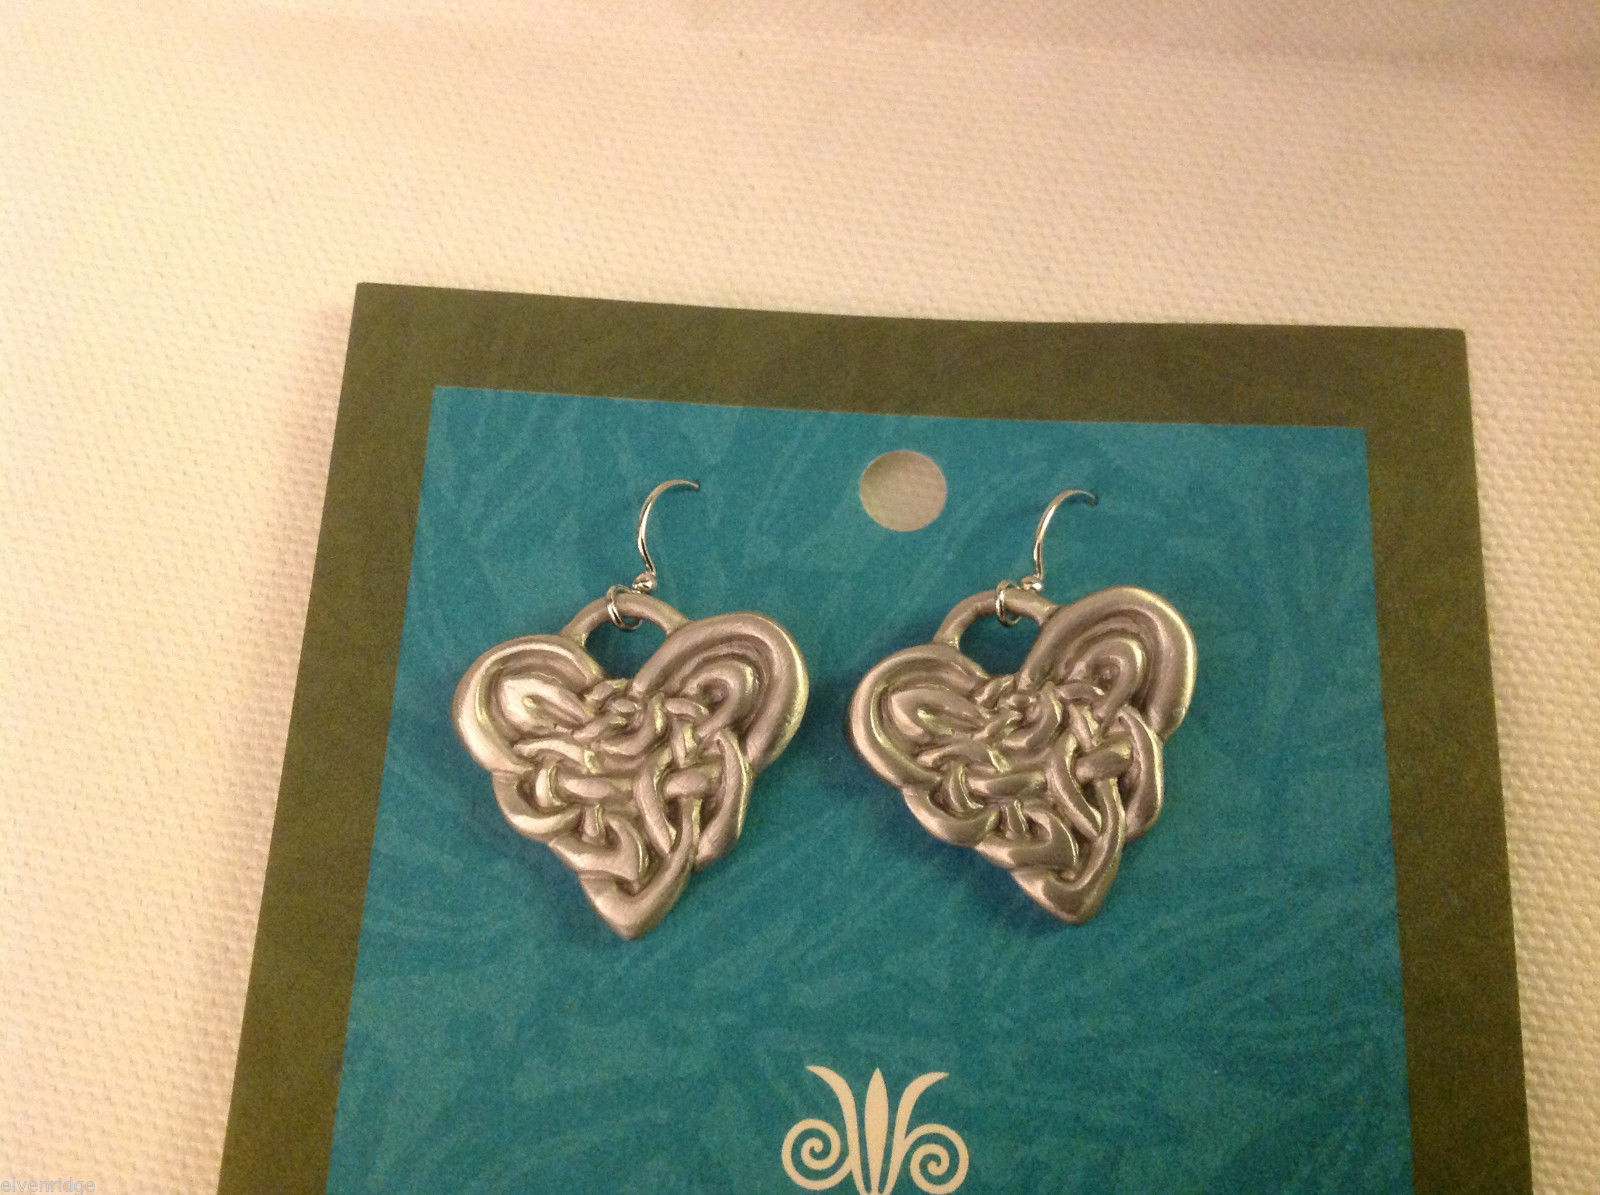 Celtic Heart earrings Cynthia Webb pewter with sterling silver ear wires